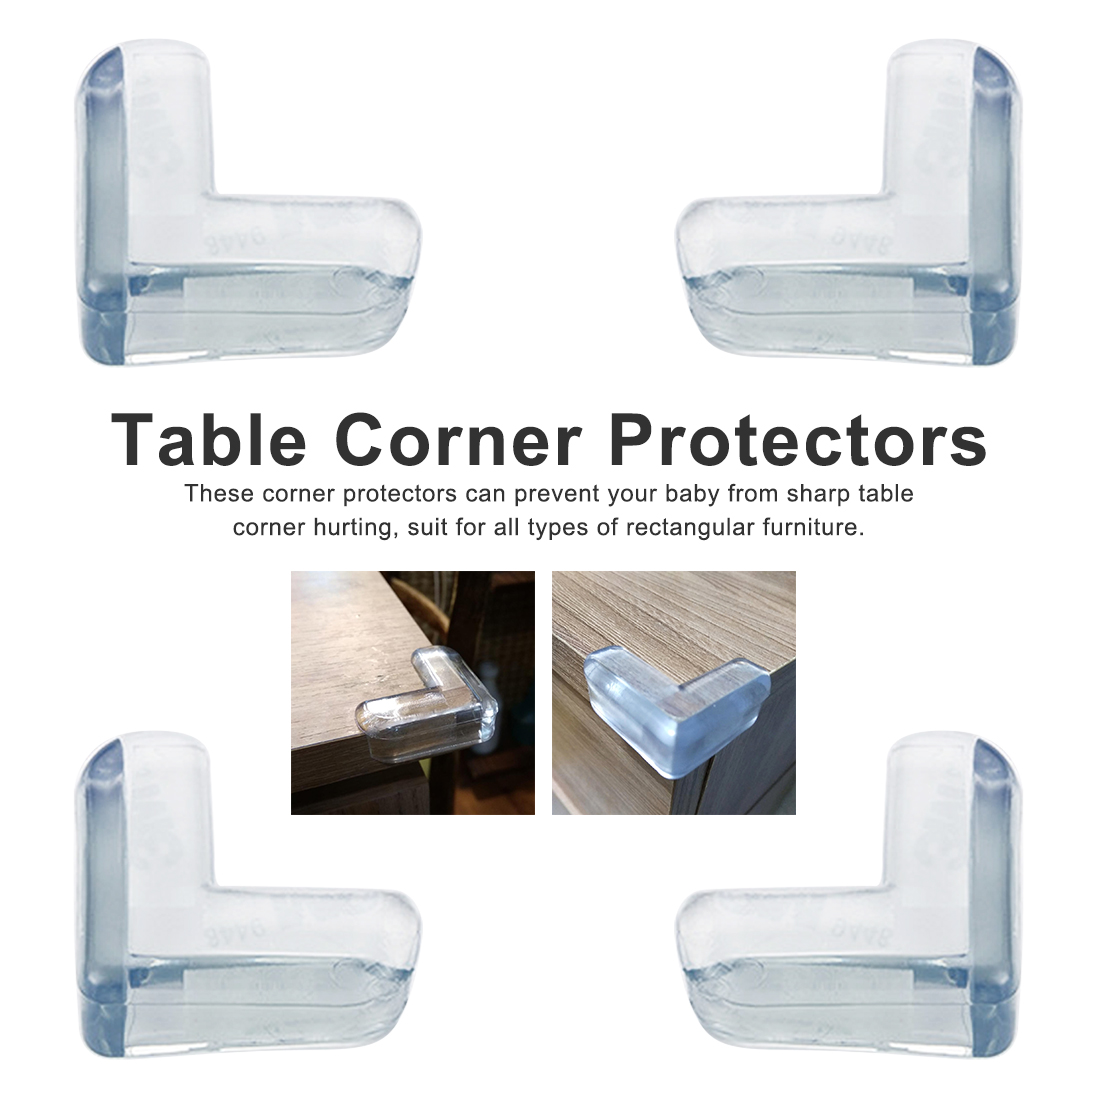 4Pcs Silicone Safety Protector Table Corner Protection From Children Anticollision Edge Corners Guards Cover For Kids 4Pcs Silicone Safety Protector Table Corner Protection From Children Anticollision Edge Corners Guards Cover For Kids